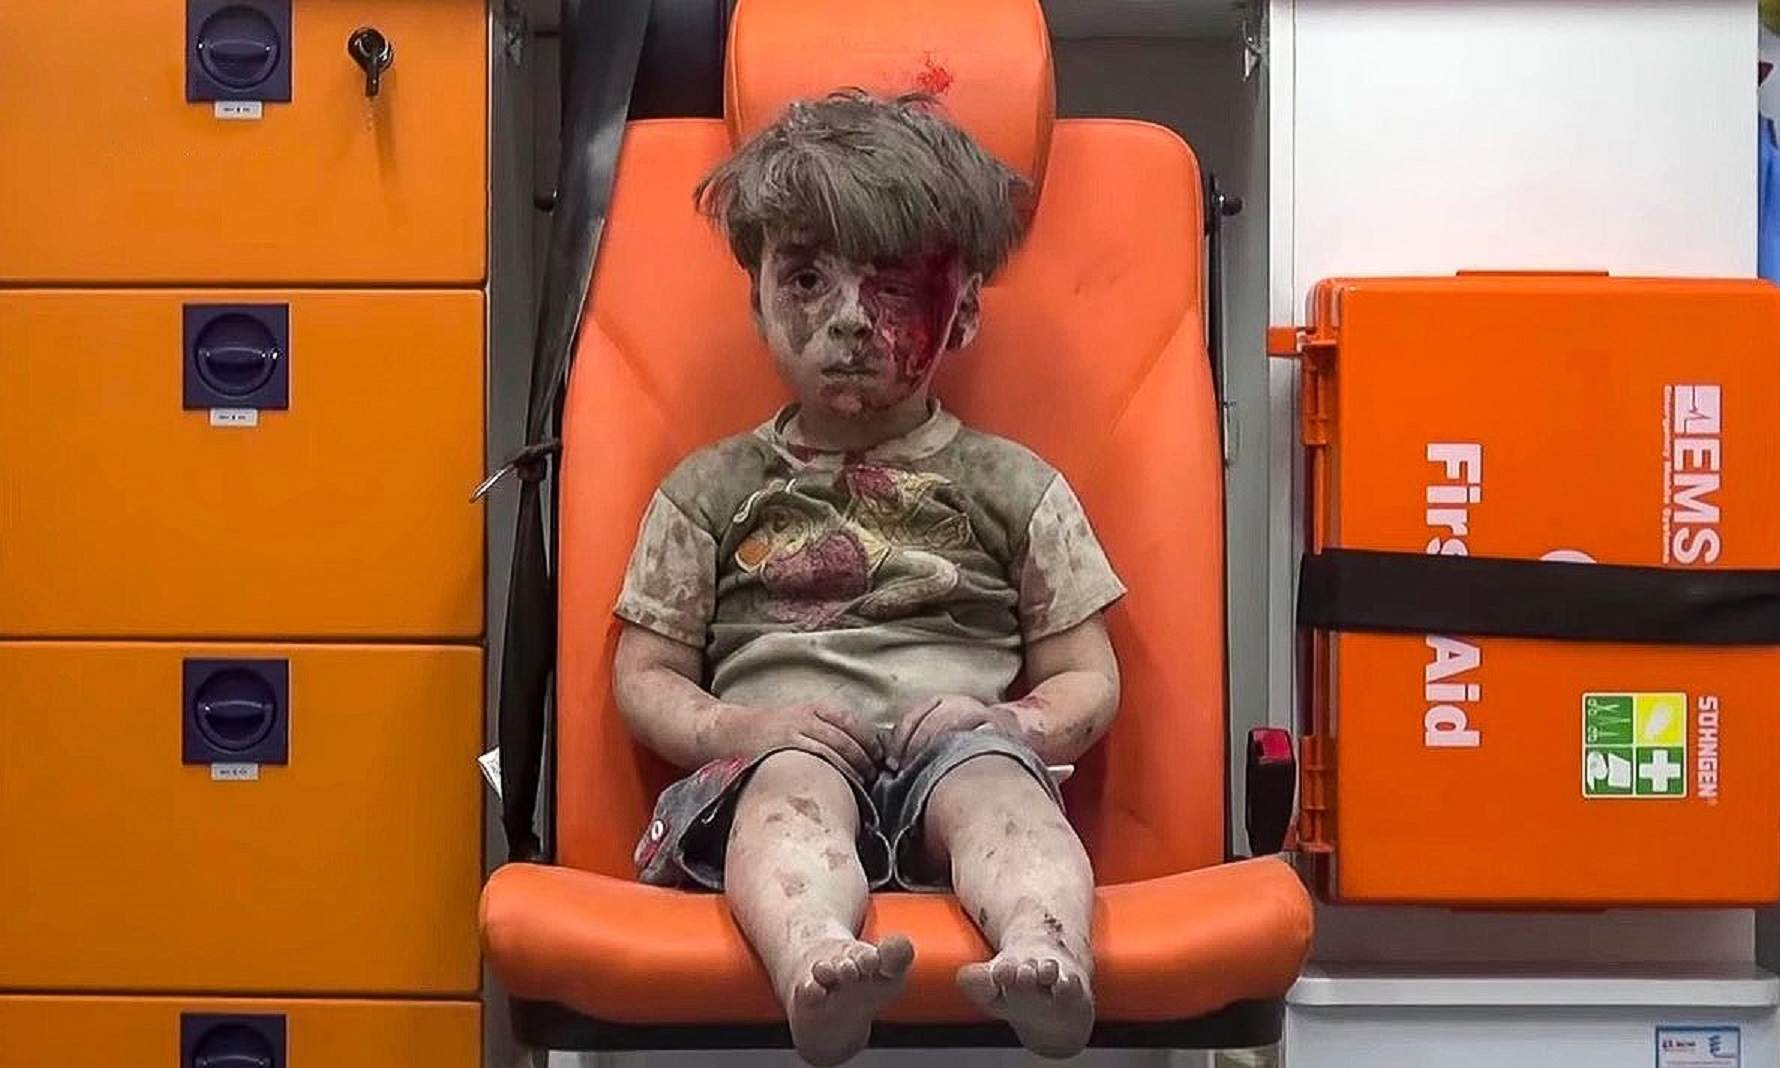 """""""I was crying as I was filming"""": the Aleppo photographer who captured the boy in the ambulance"""